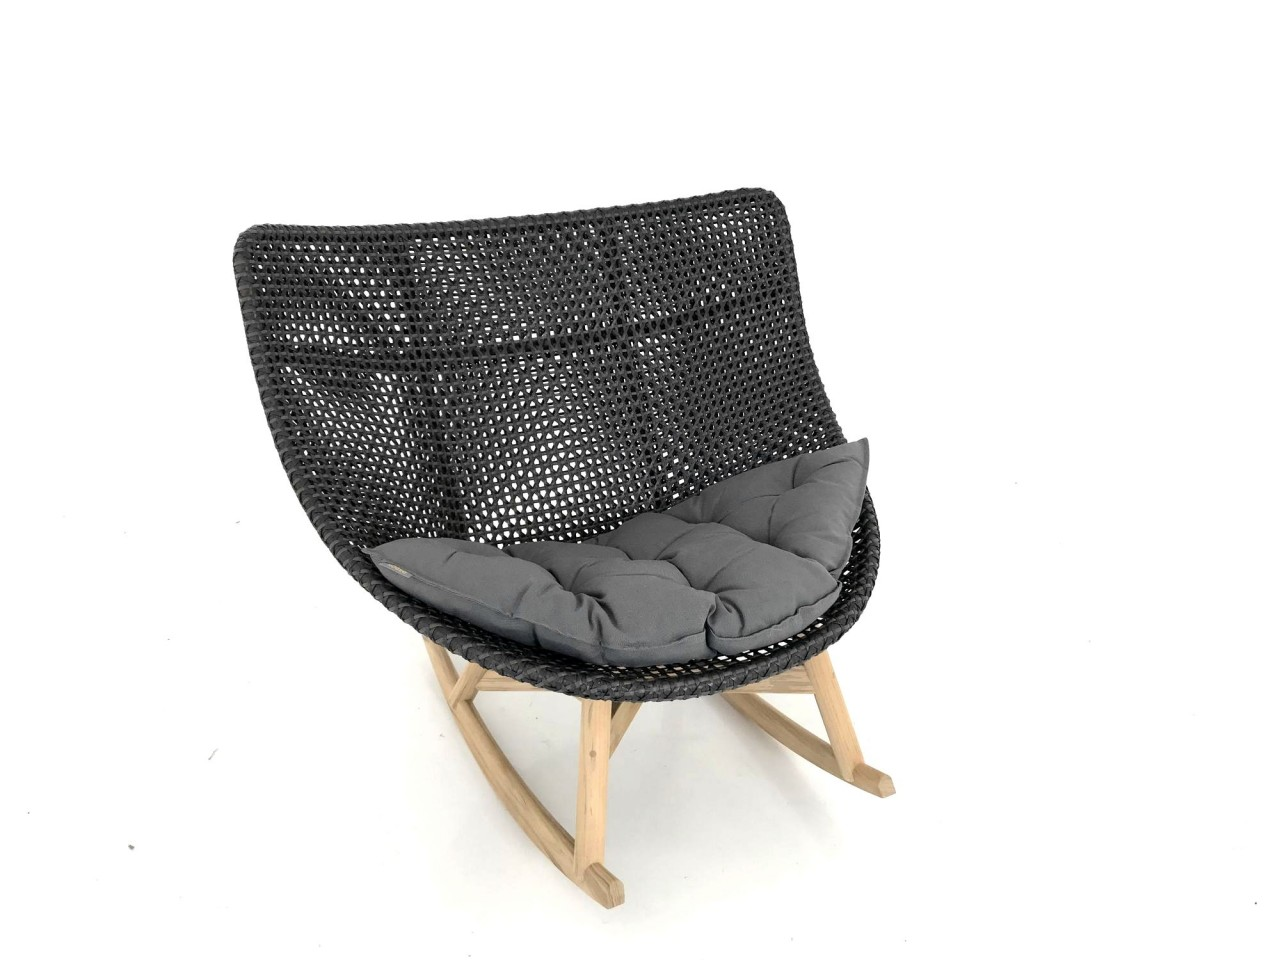 Dedon Sessel Dedon Mbrace Rocking Chair Schaukel Sessel In Der Farbe Arabica Mit Sitzkissen In 454 Dark Gray